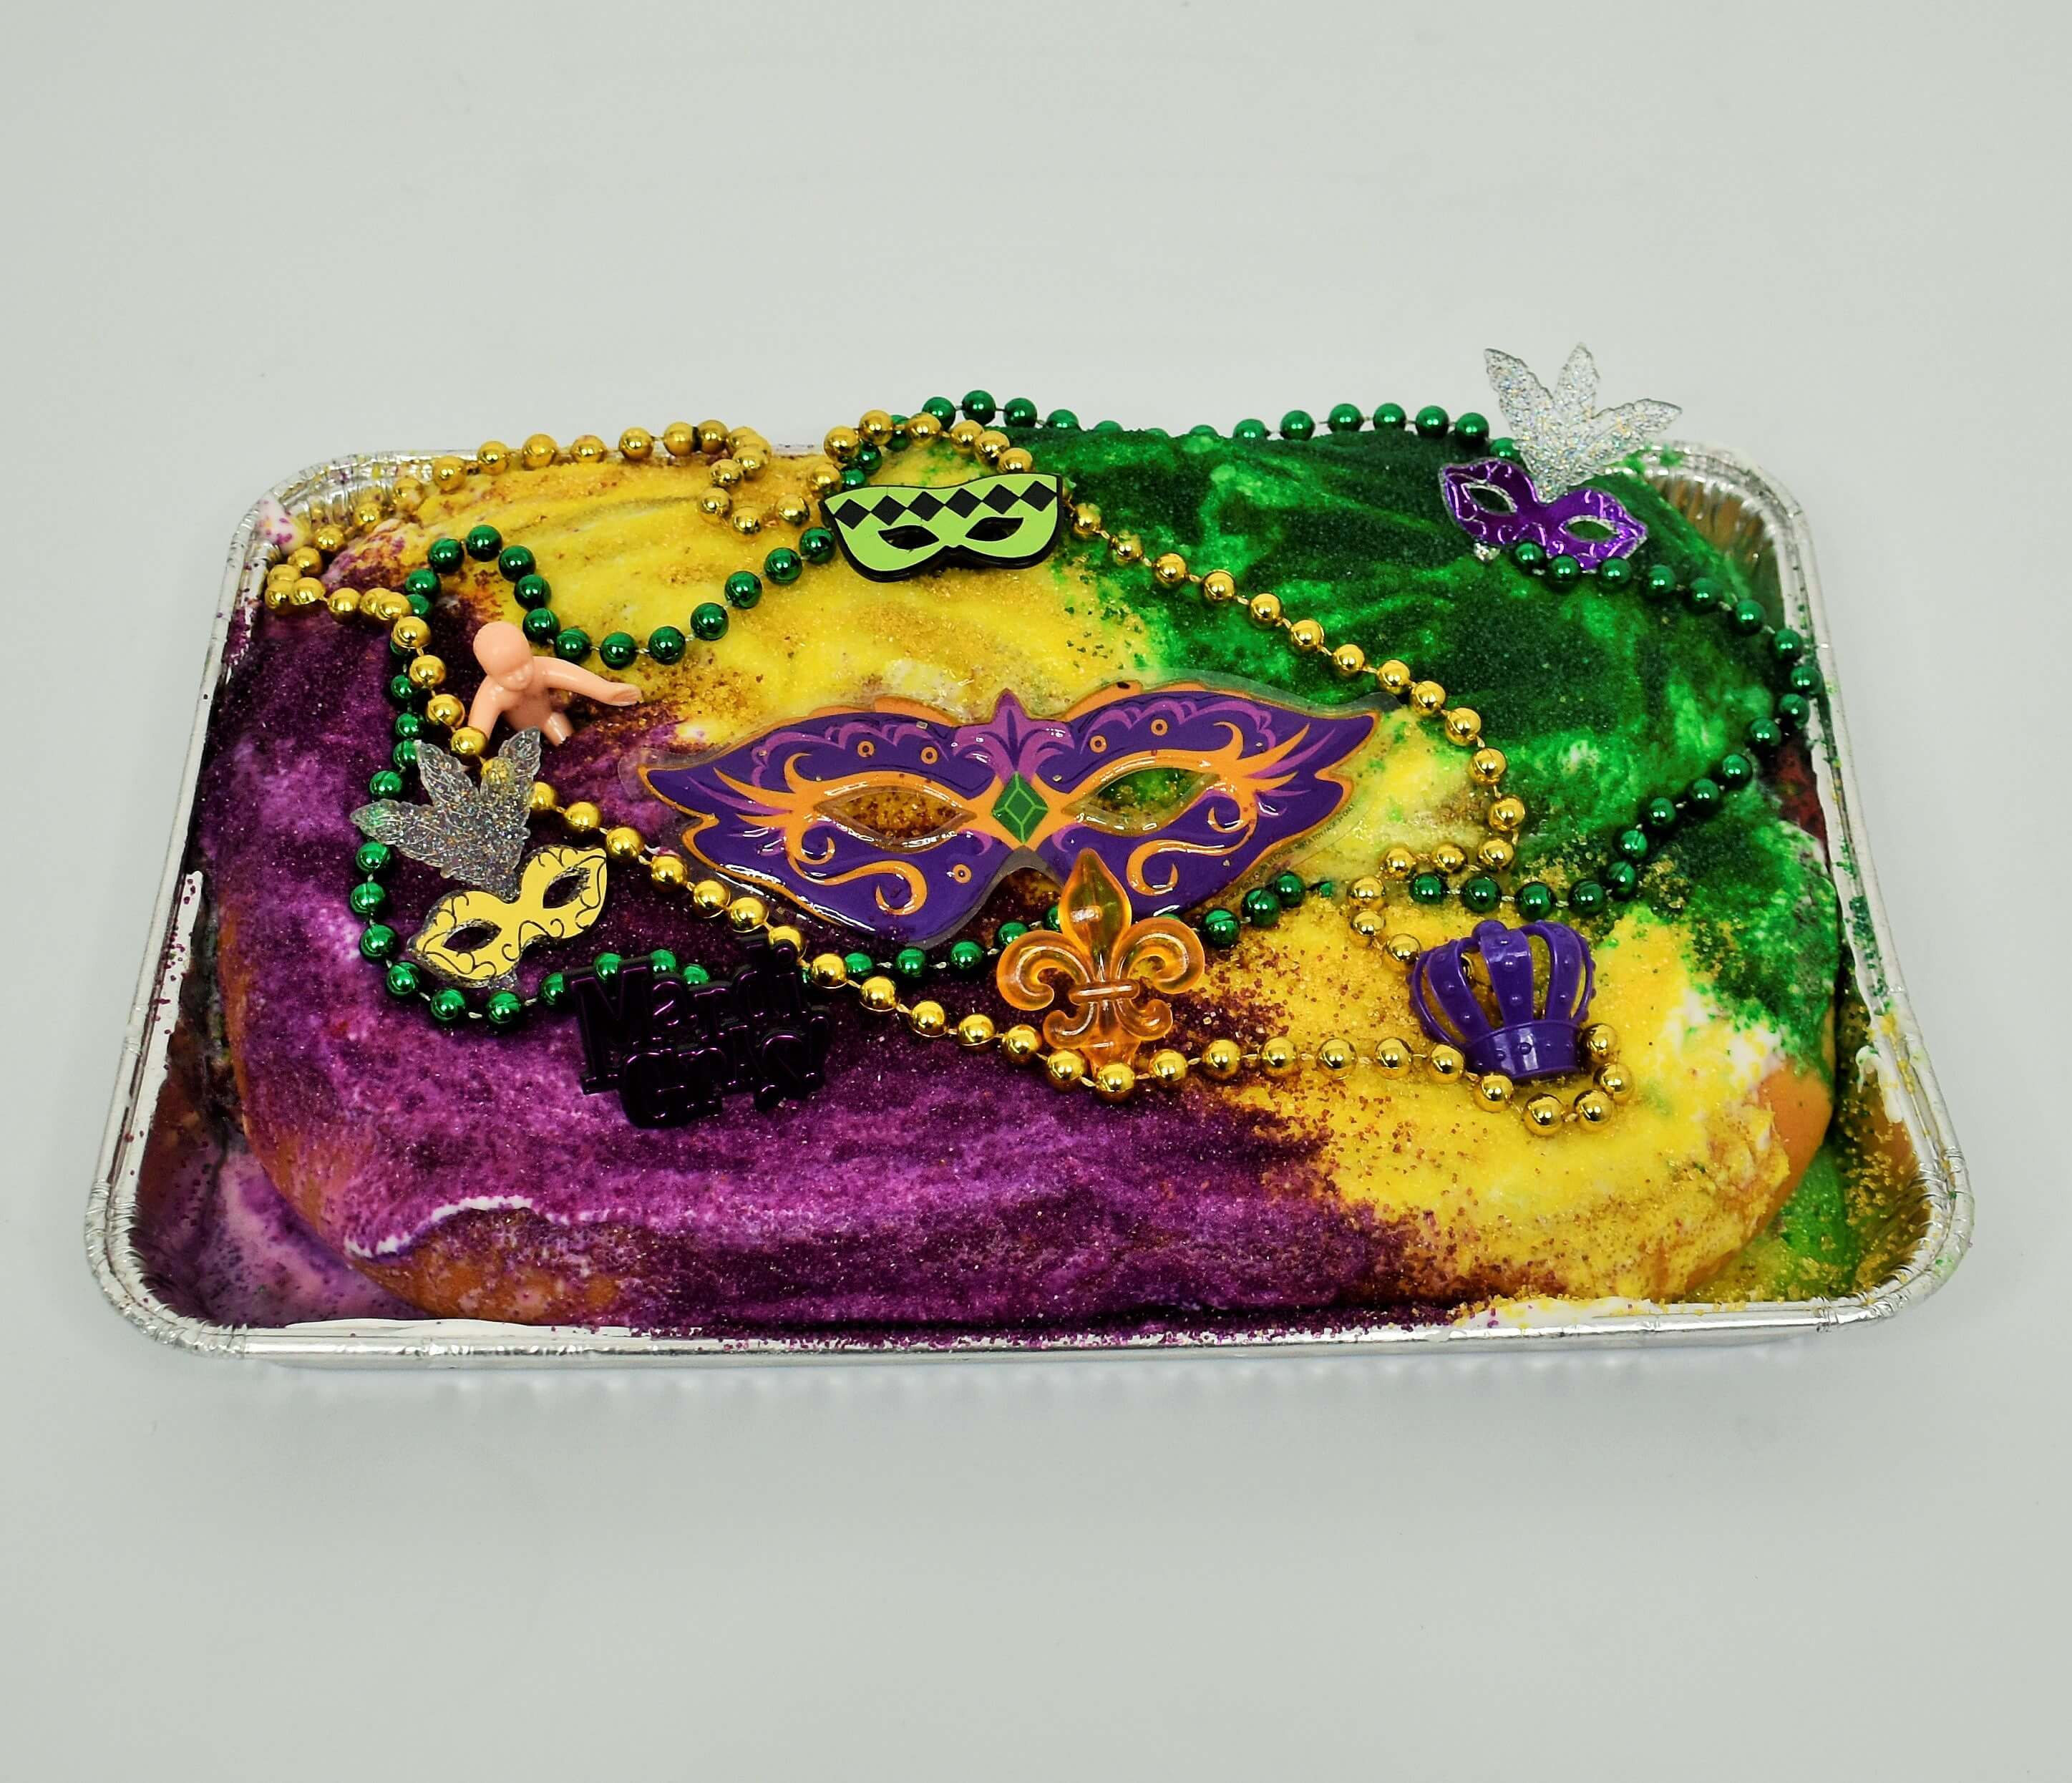 King Cake With Gooey Butter Filling